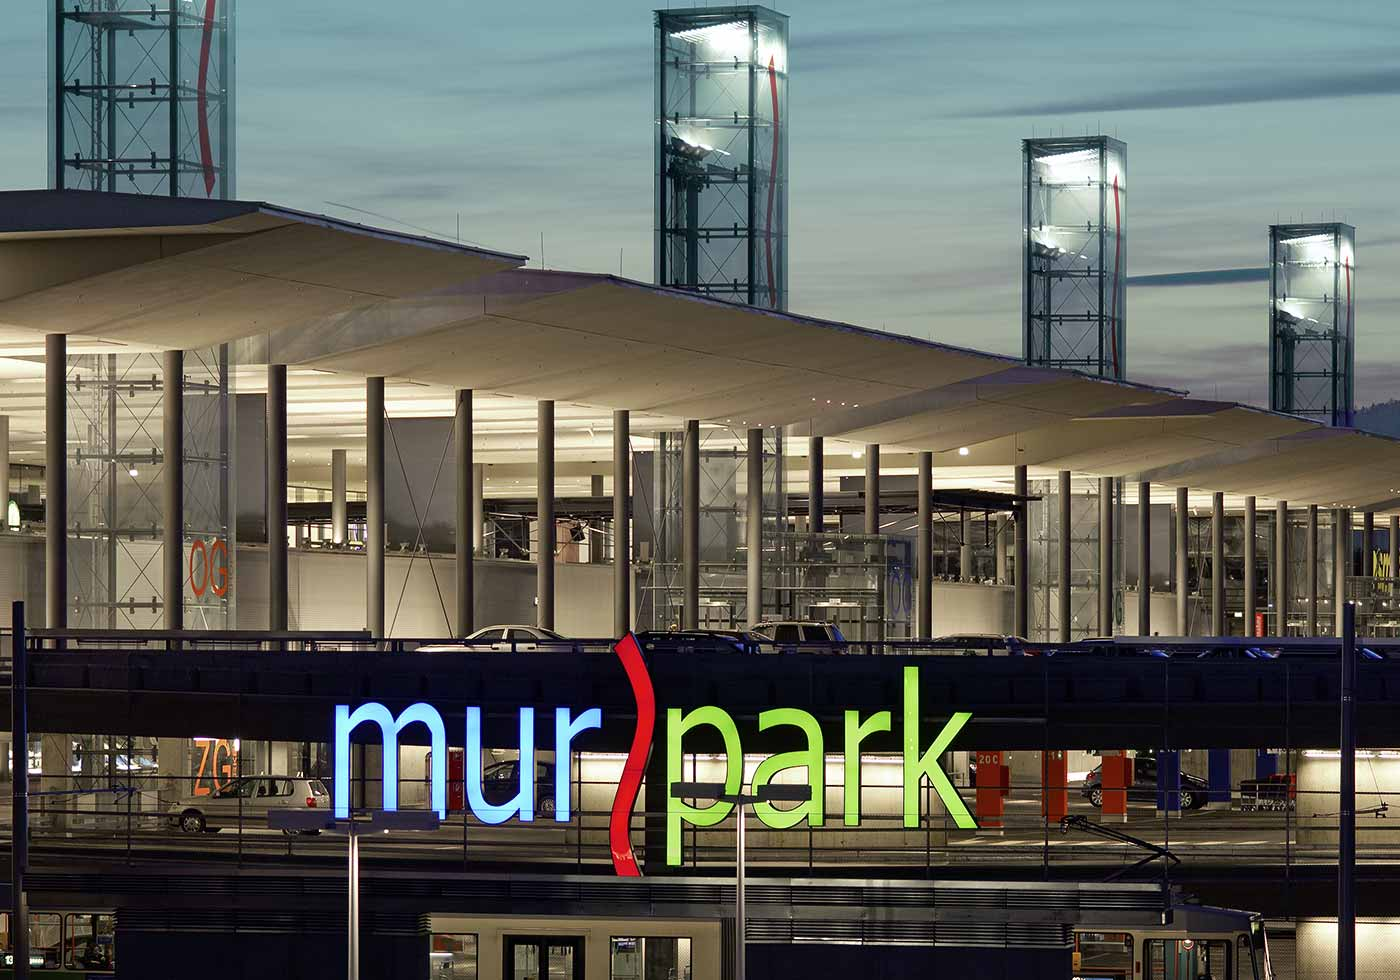 Murpark is the best European Shopping Center